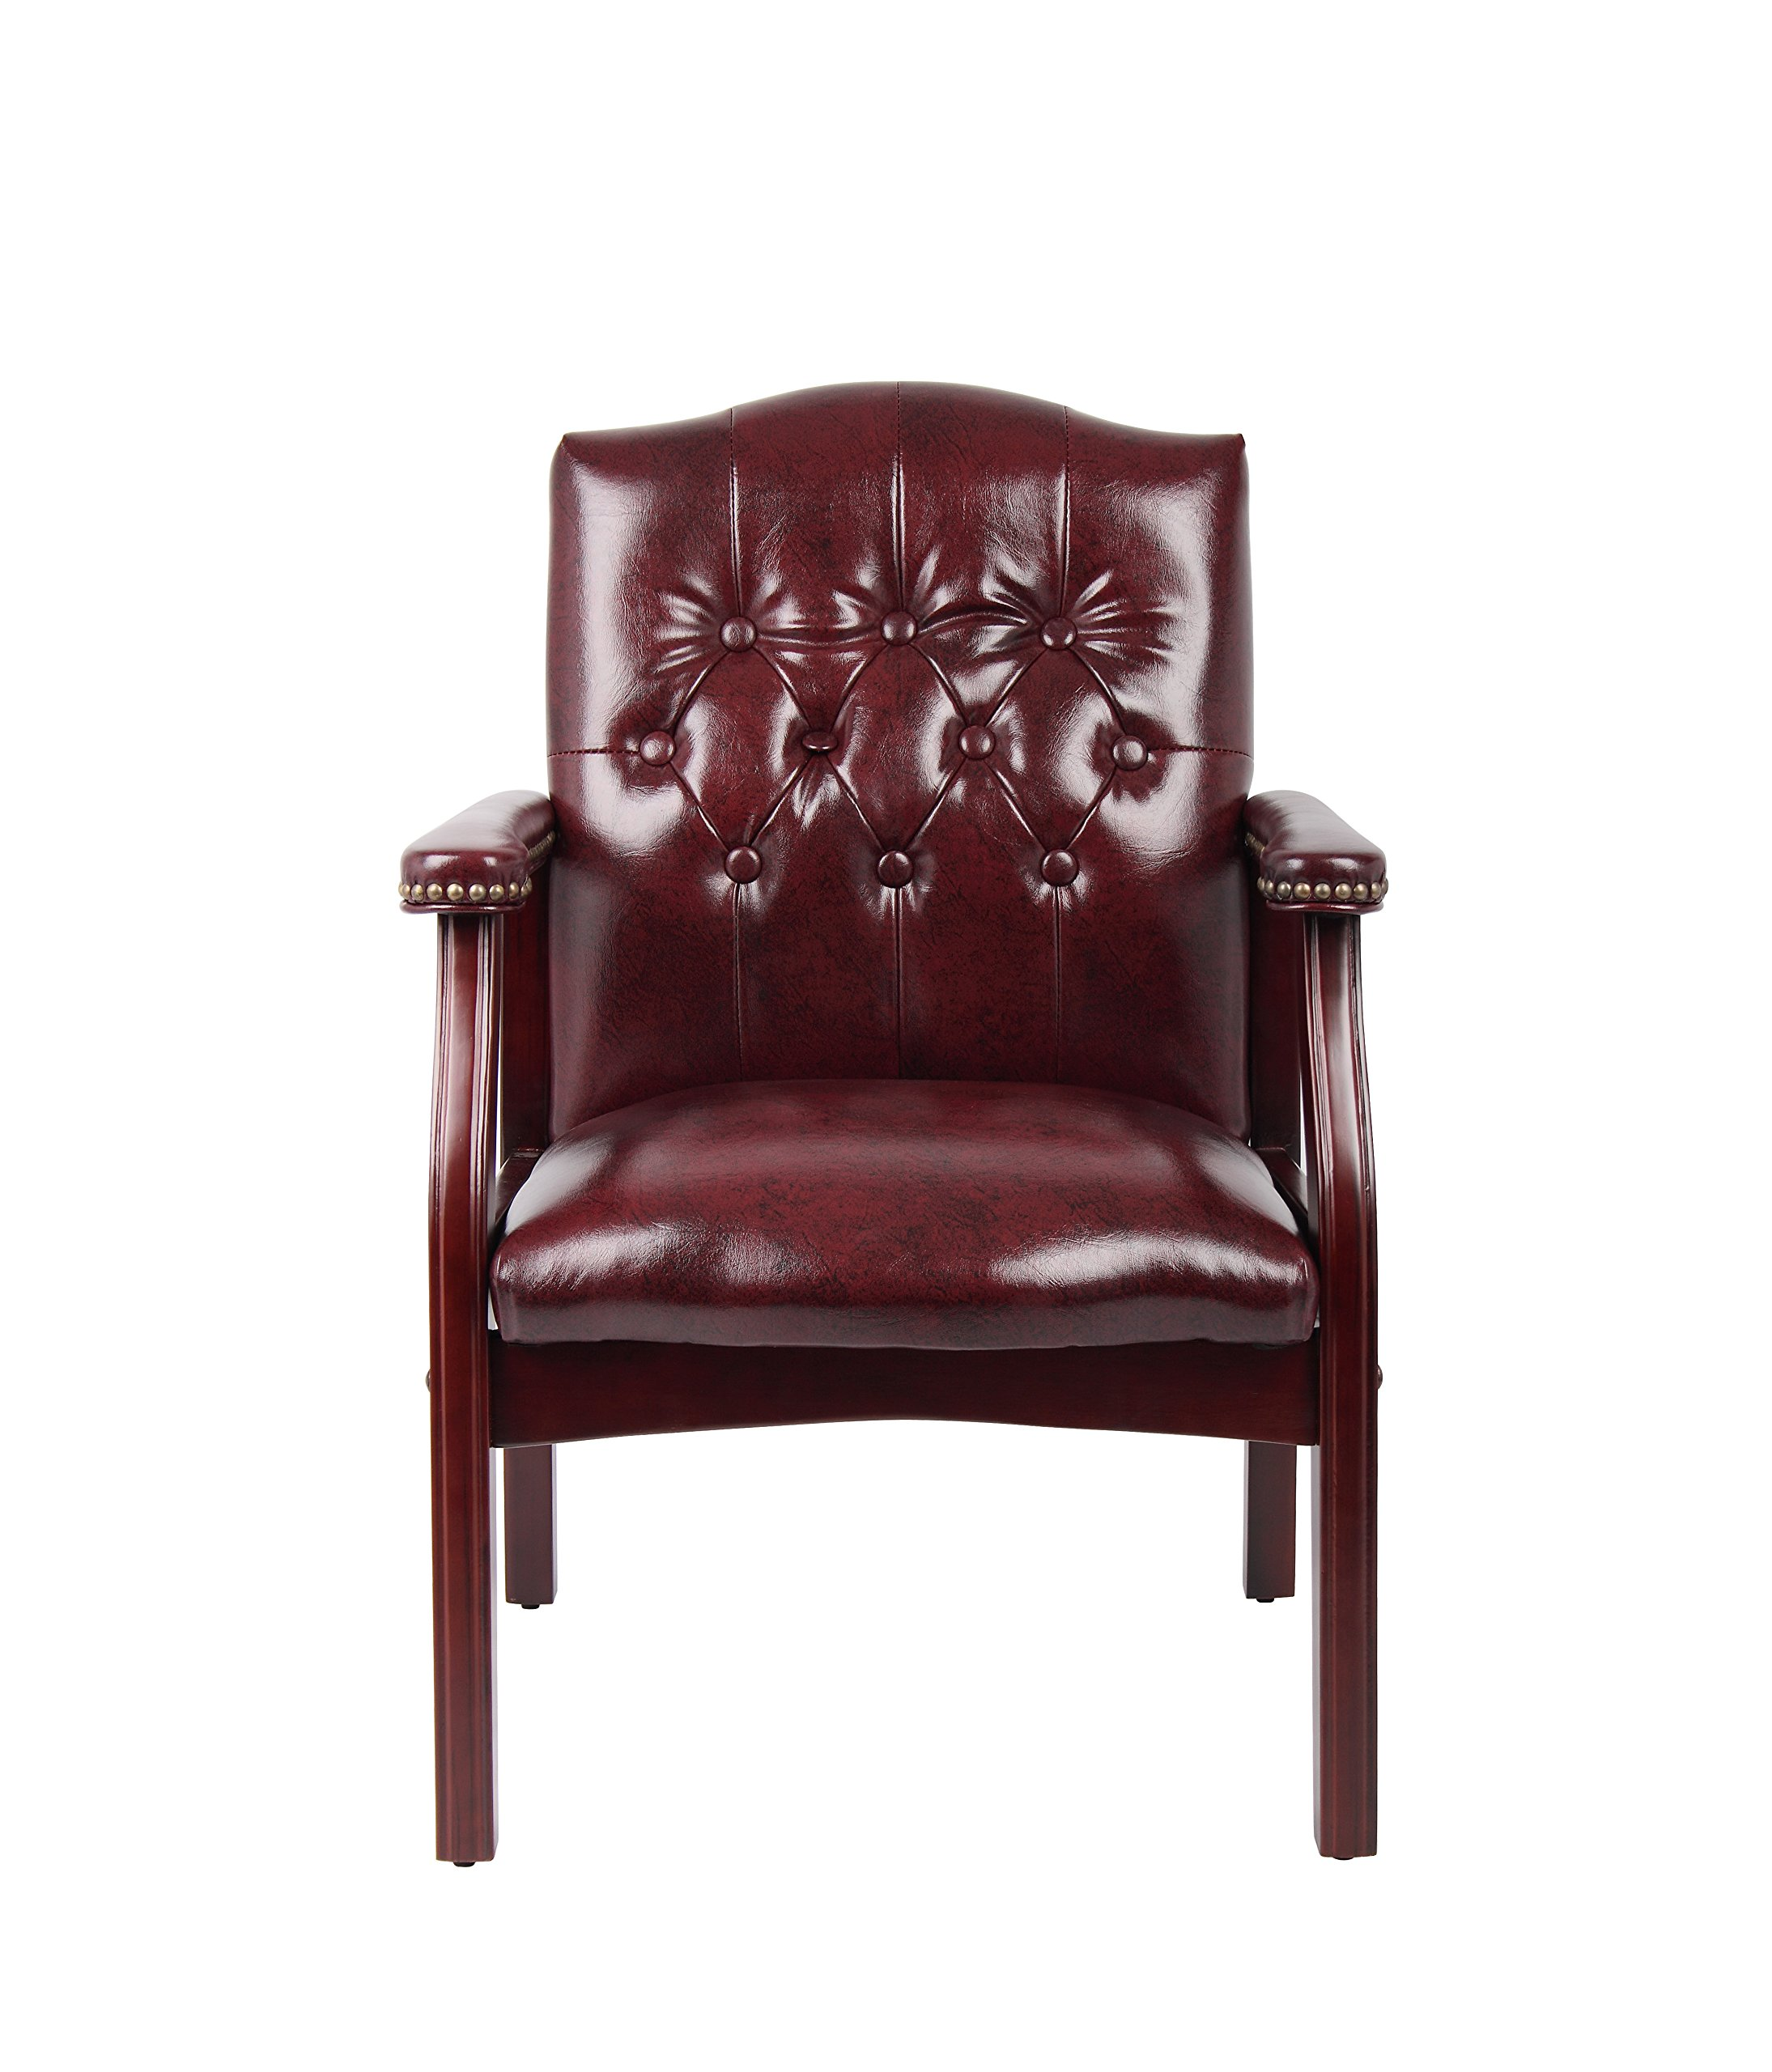 Boss Office Products B959-BY Ivy League Executive Guest Chair in Burgundy by Boss Office Products (Image #3)